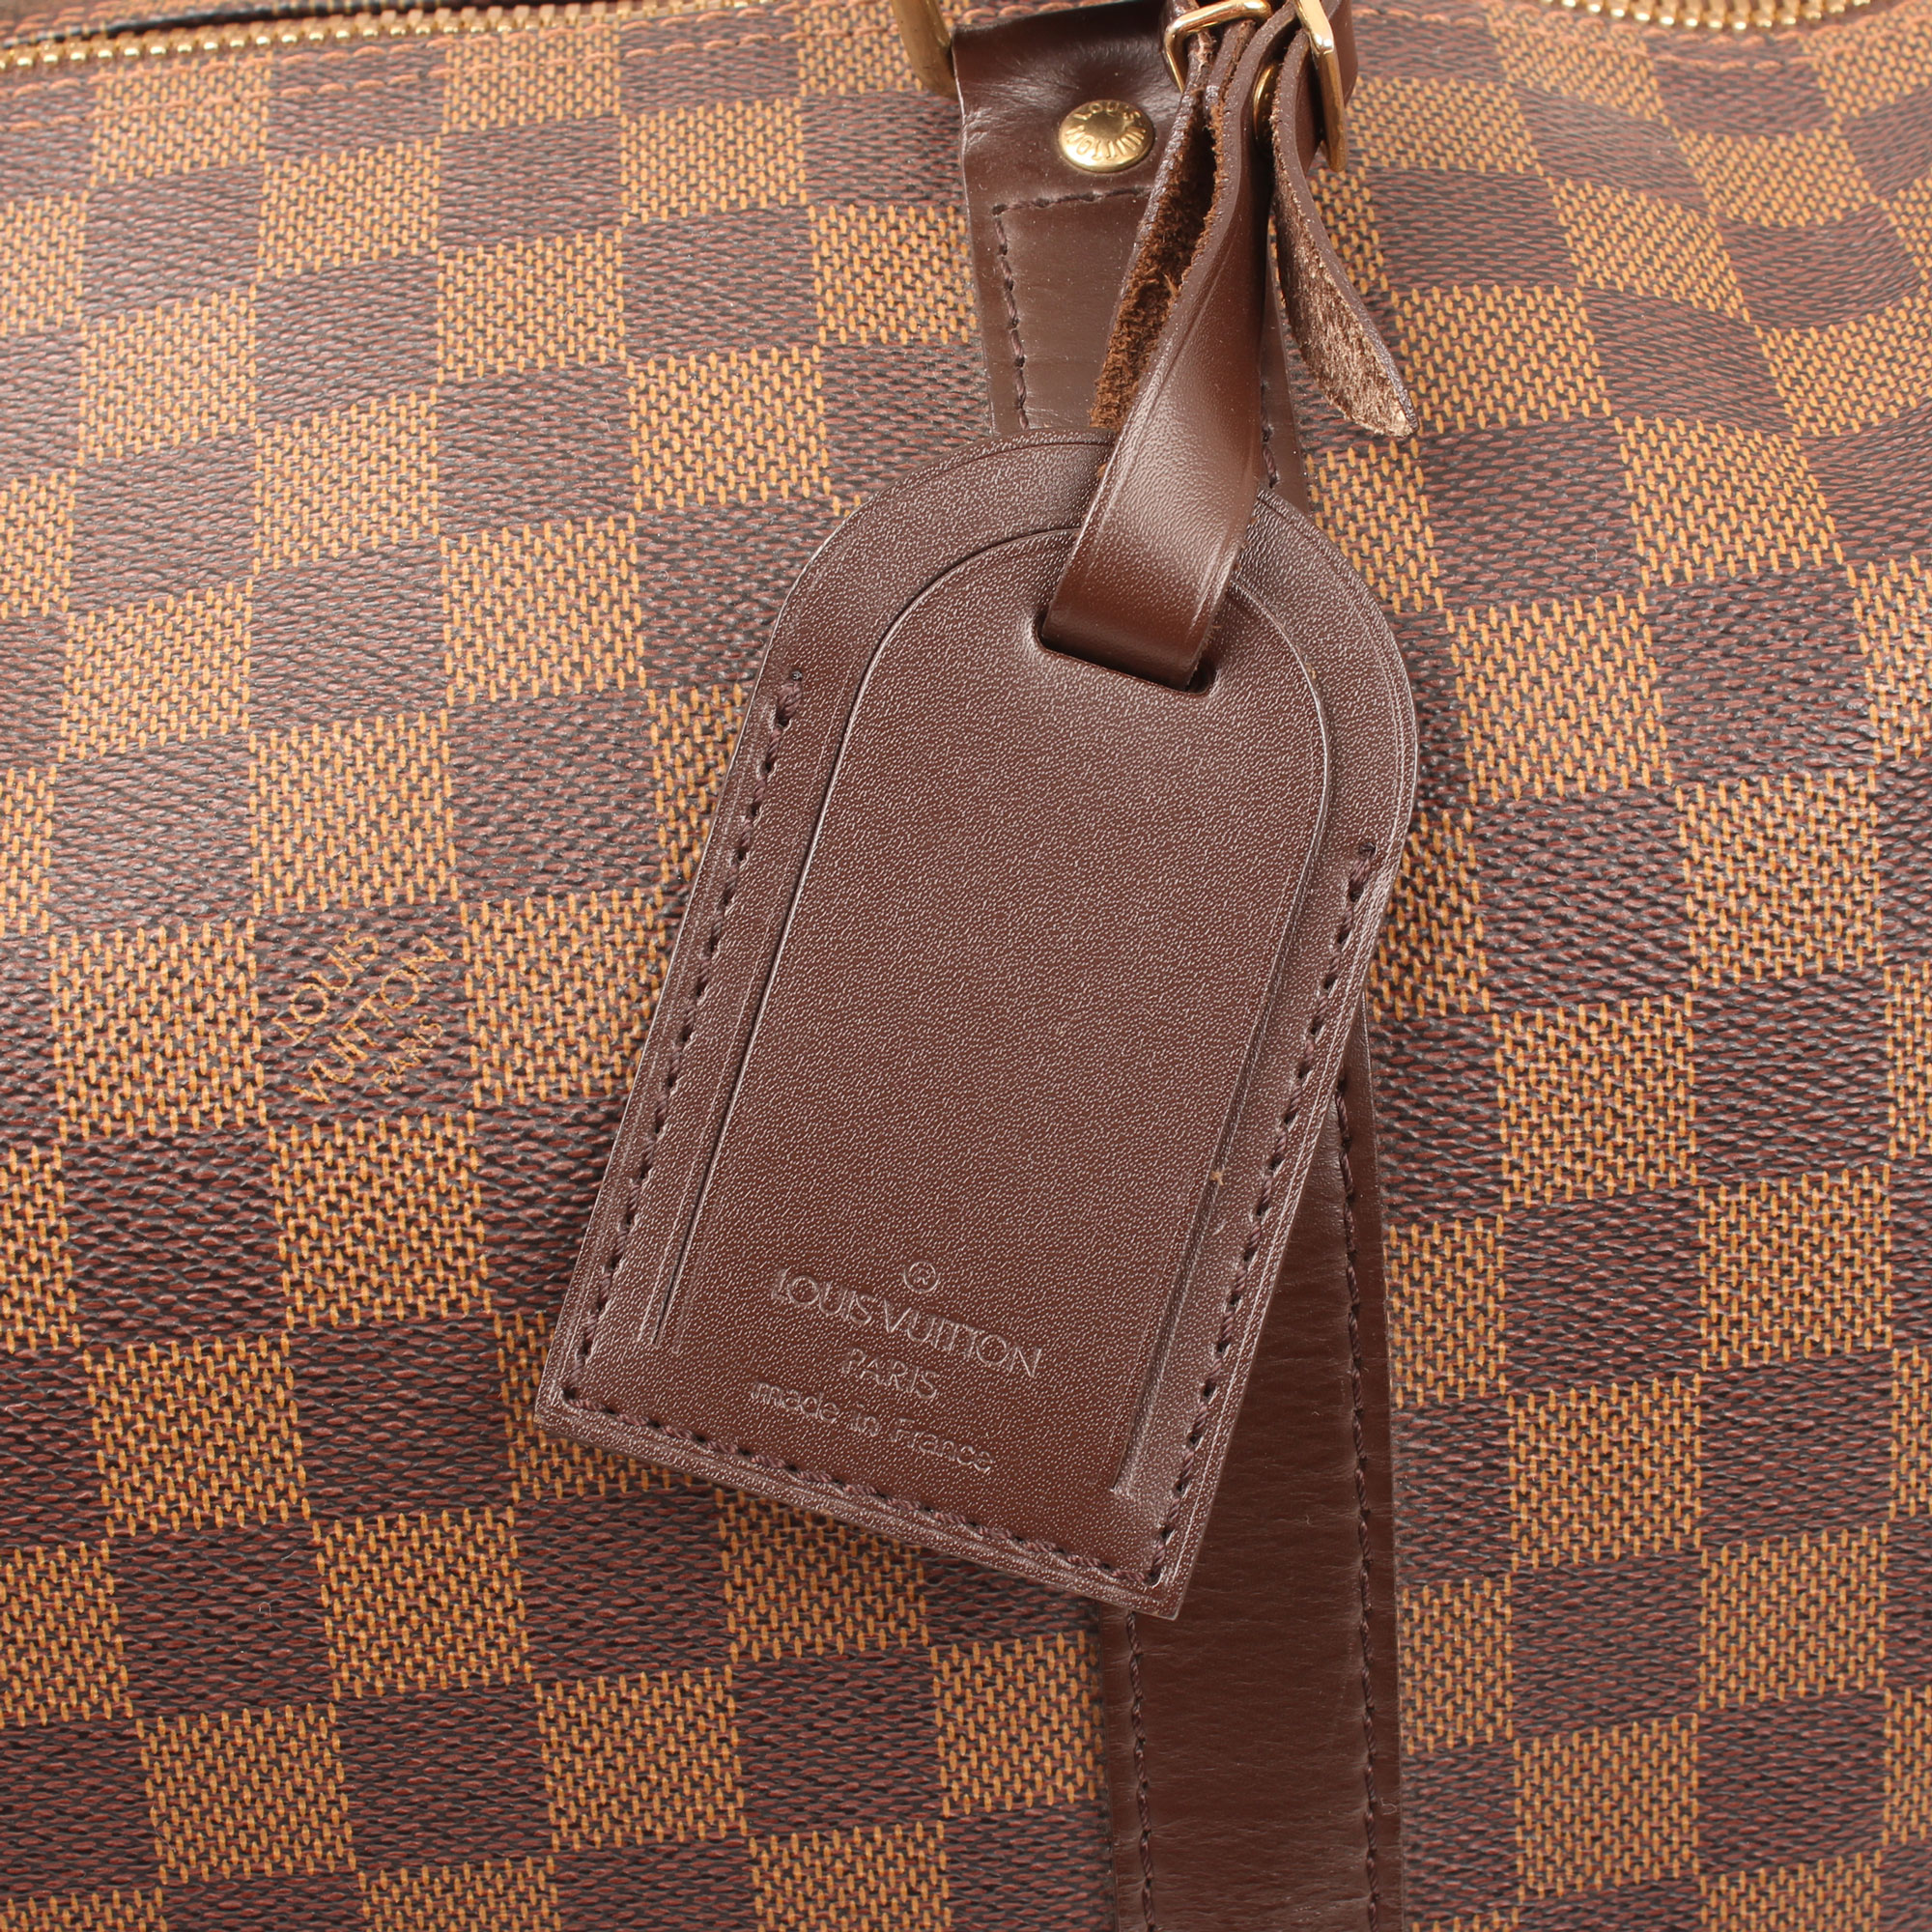 travel-bag-louis-vuitton-keepall-50-damier-ebene-ID-tag